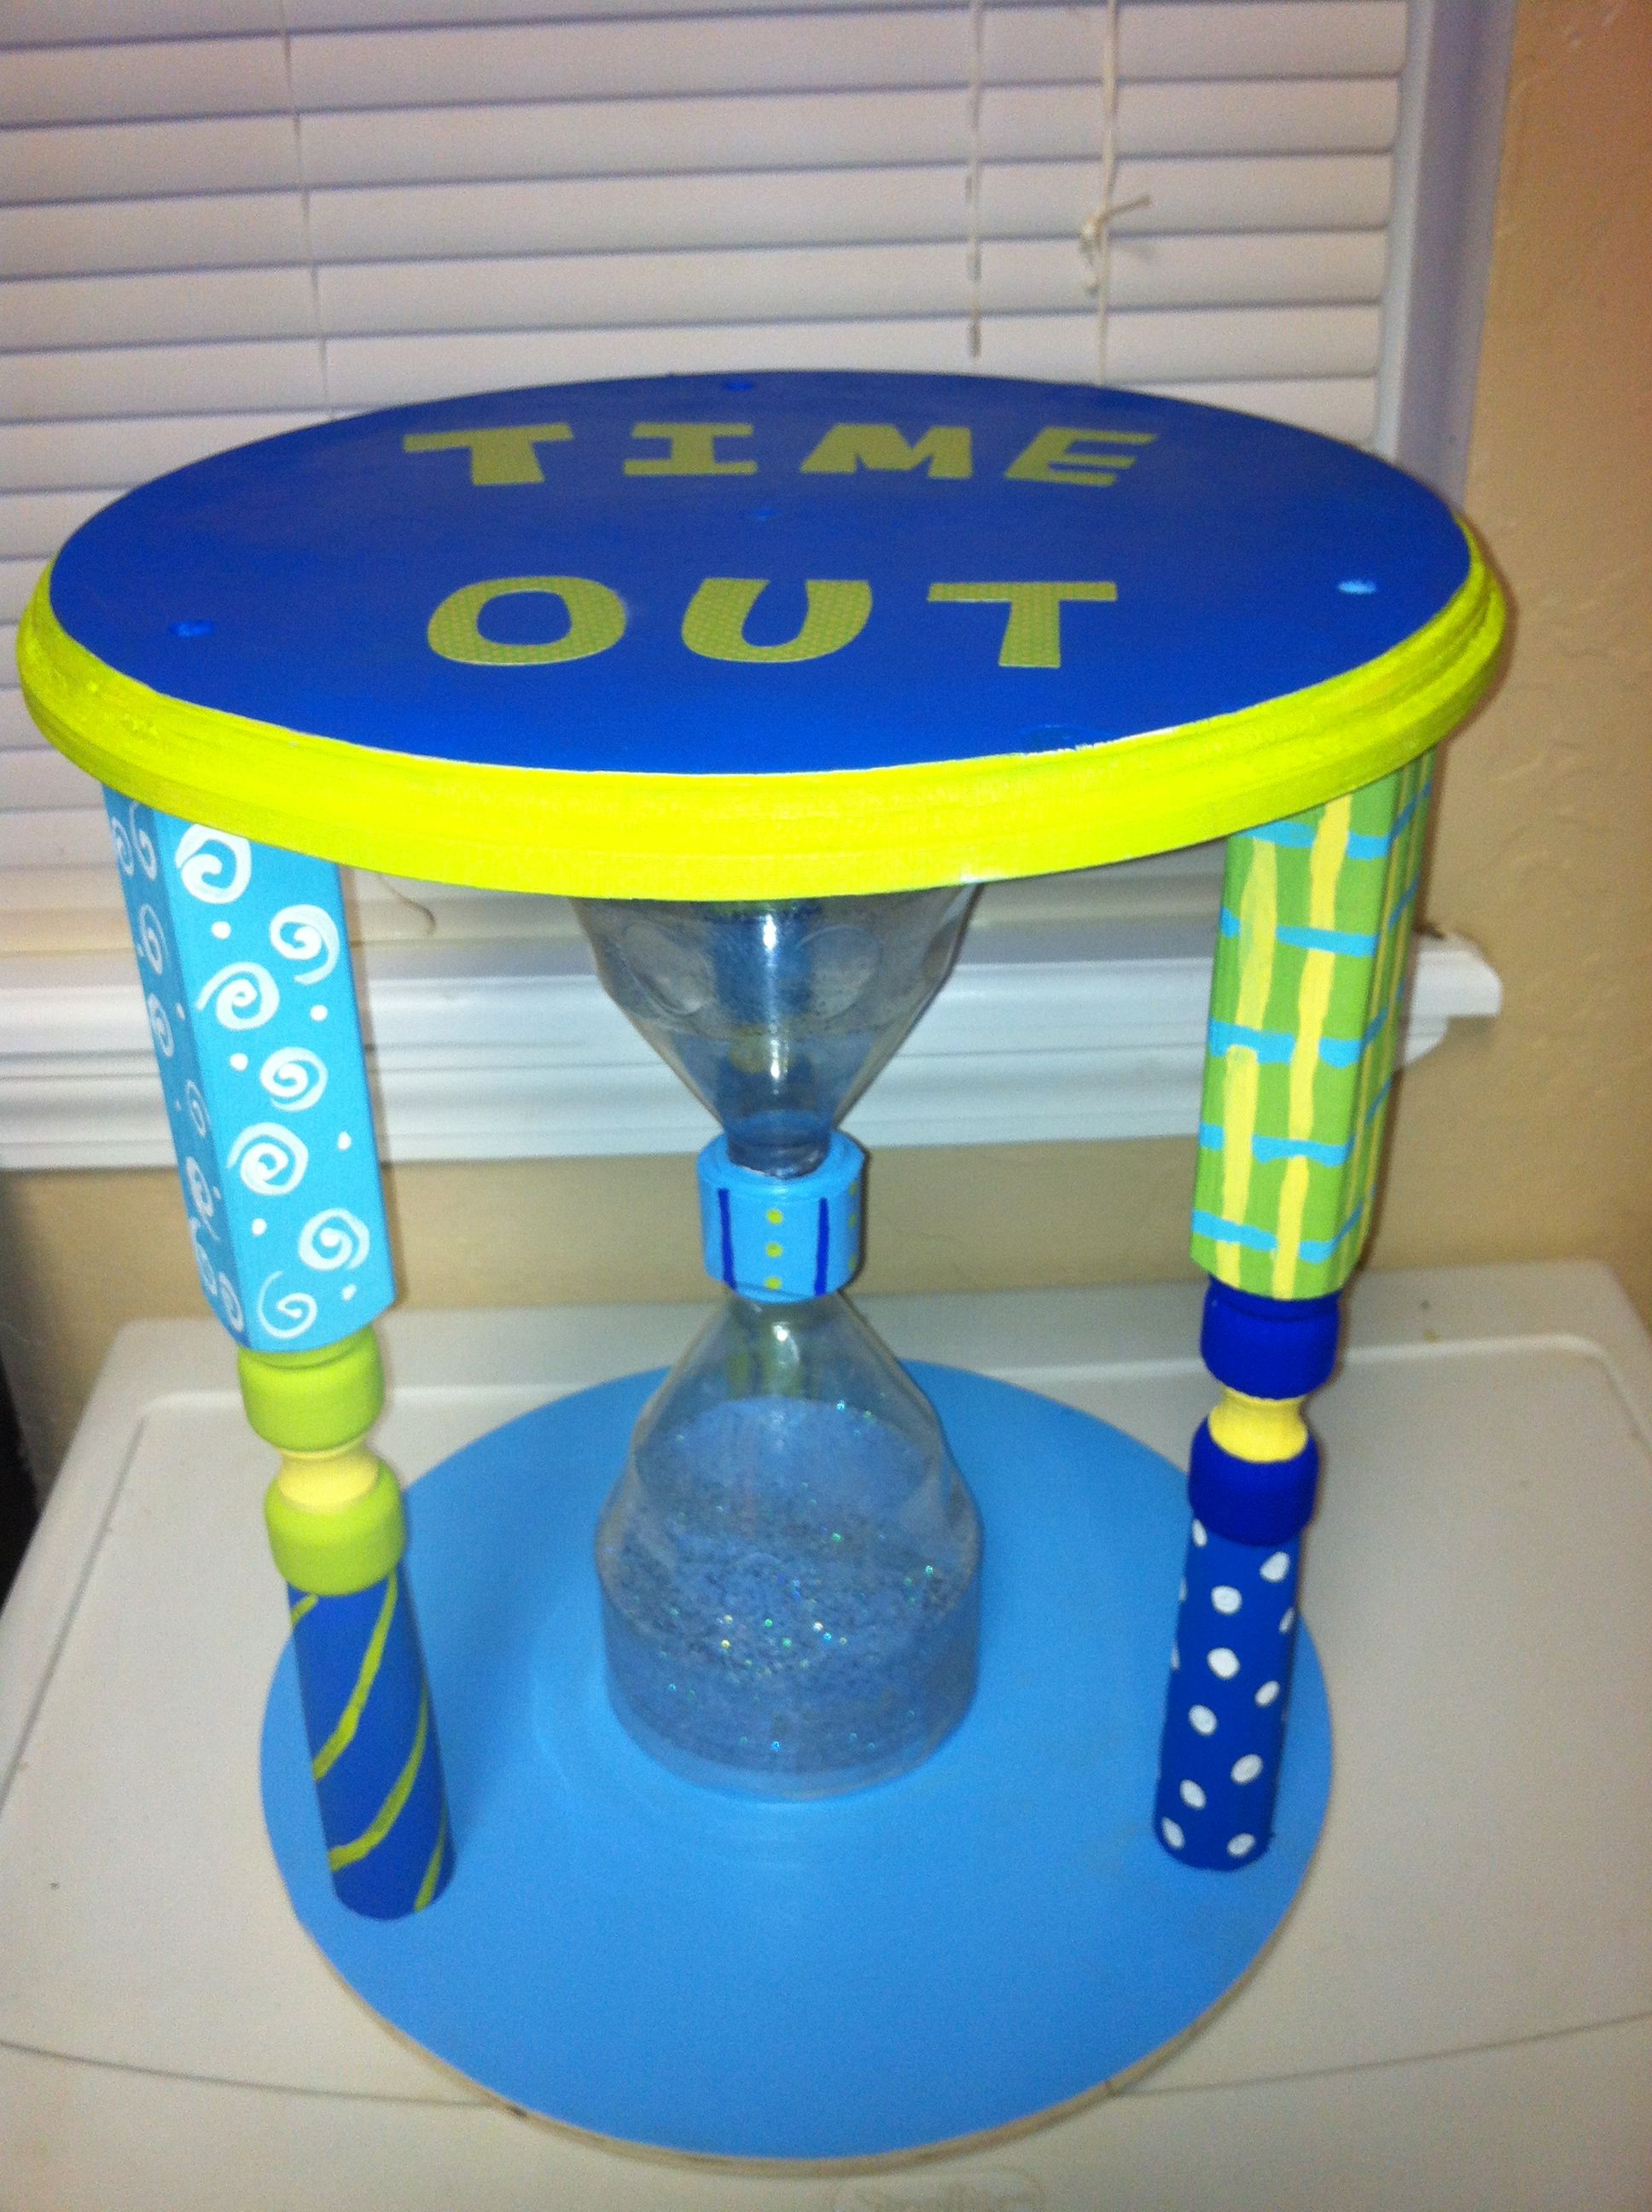 20 best Time out kids images on Pinterest | Time out, Good ideas and Random  stuff